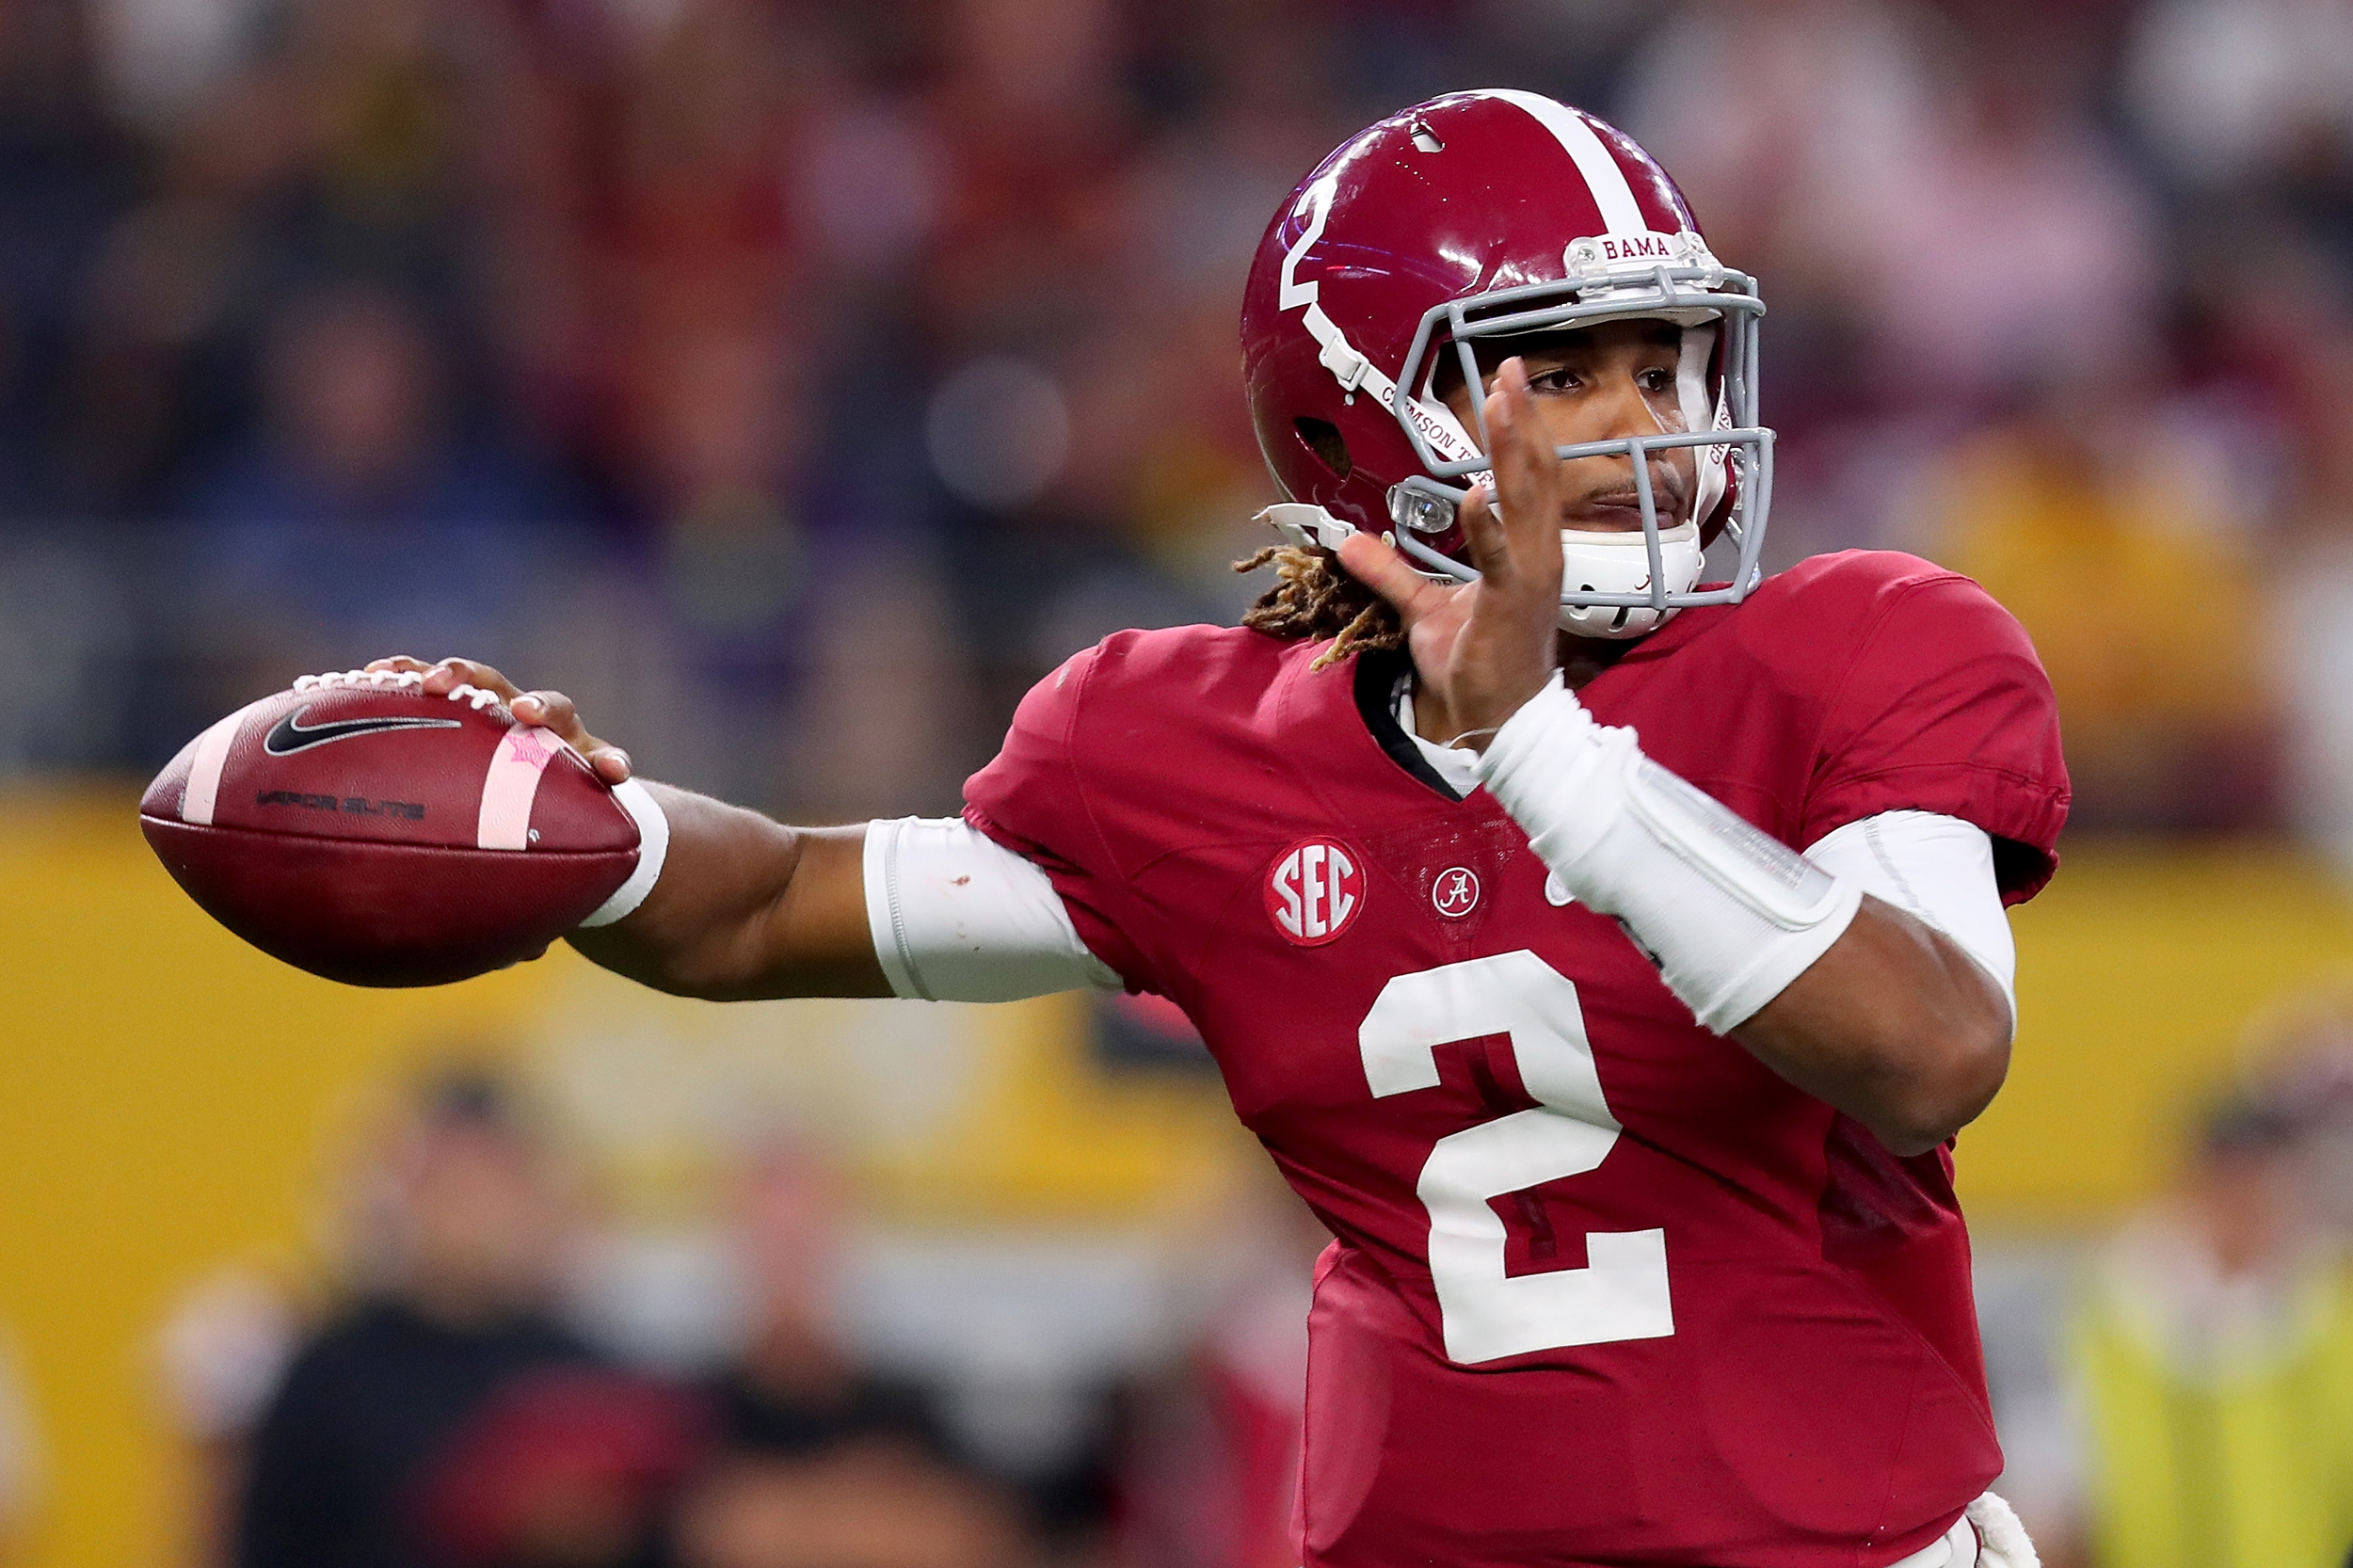 reputable site 6de71 b7d8e College Football Playoff: Six things about Tide quarterback ...